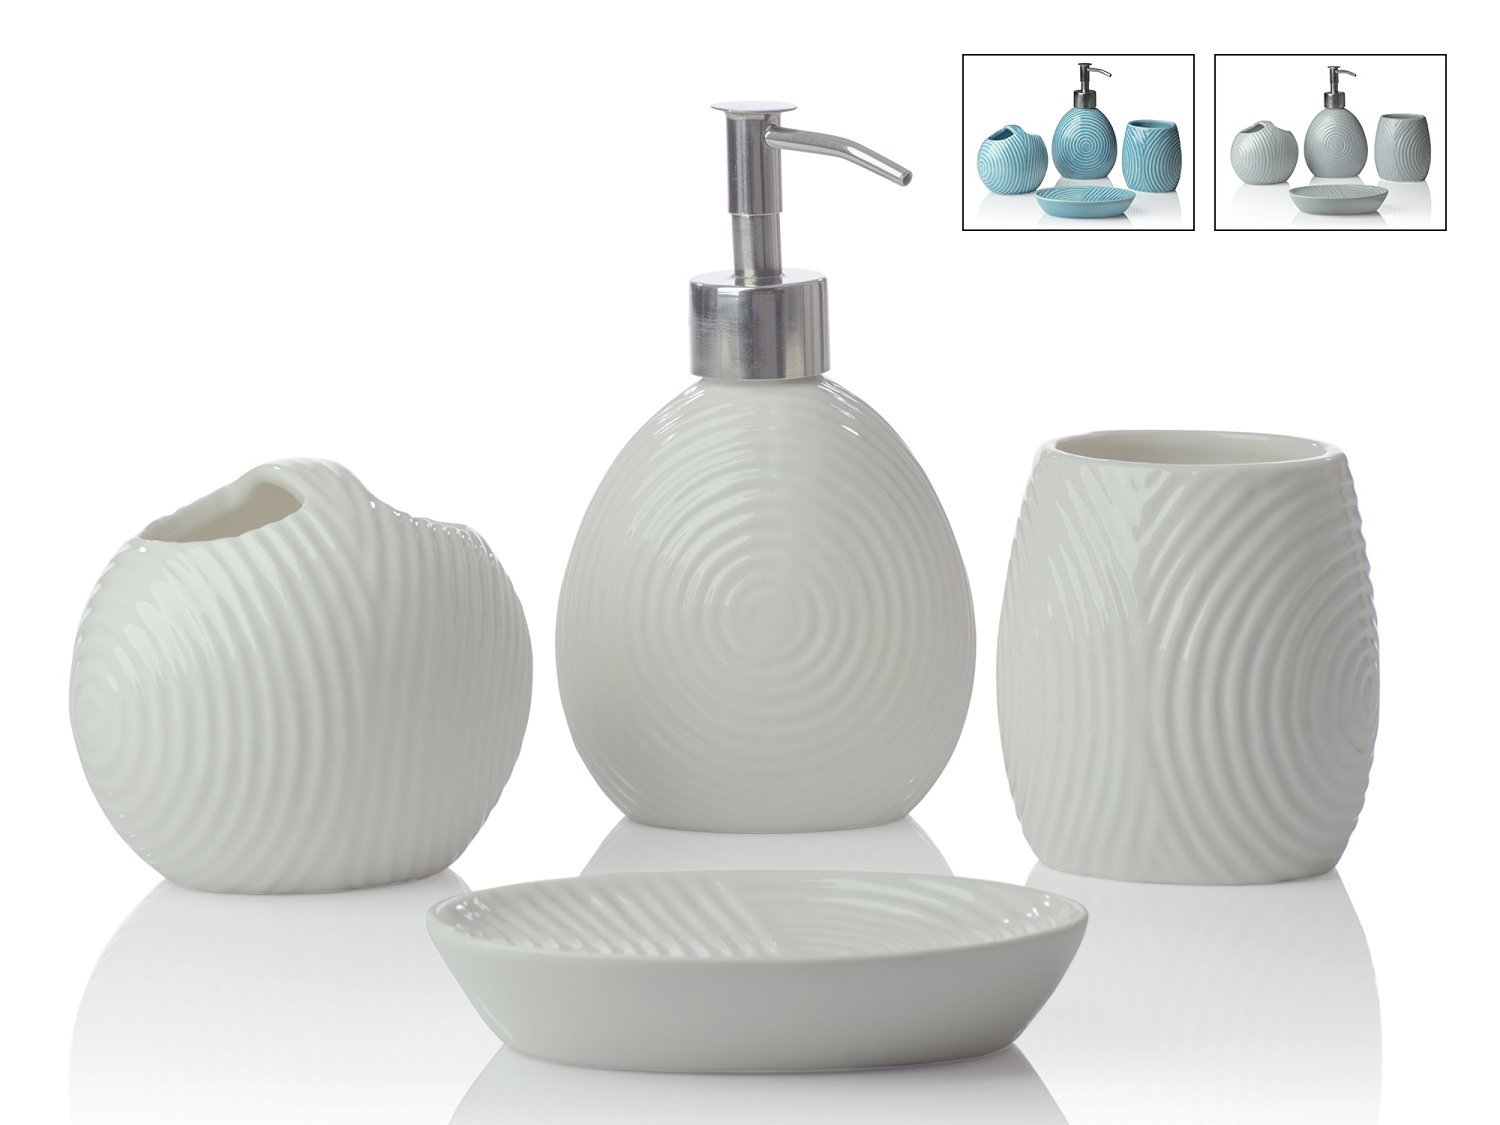 Amazon.com: Designer 4-Piece Ceramic Bath Accessory Set | Includes ...